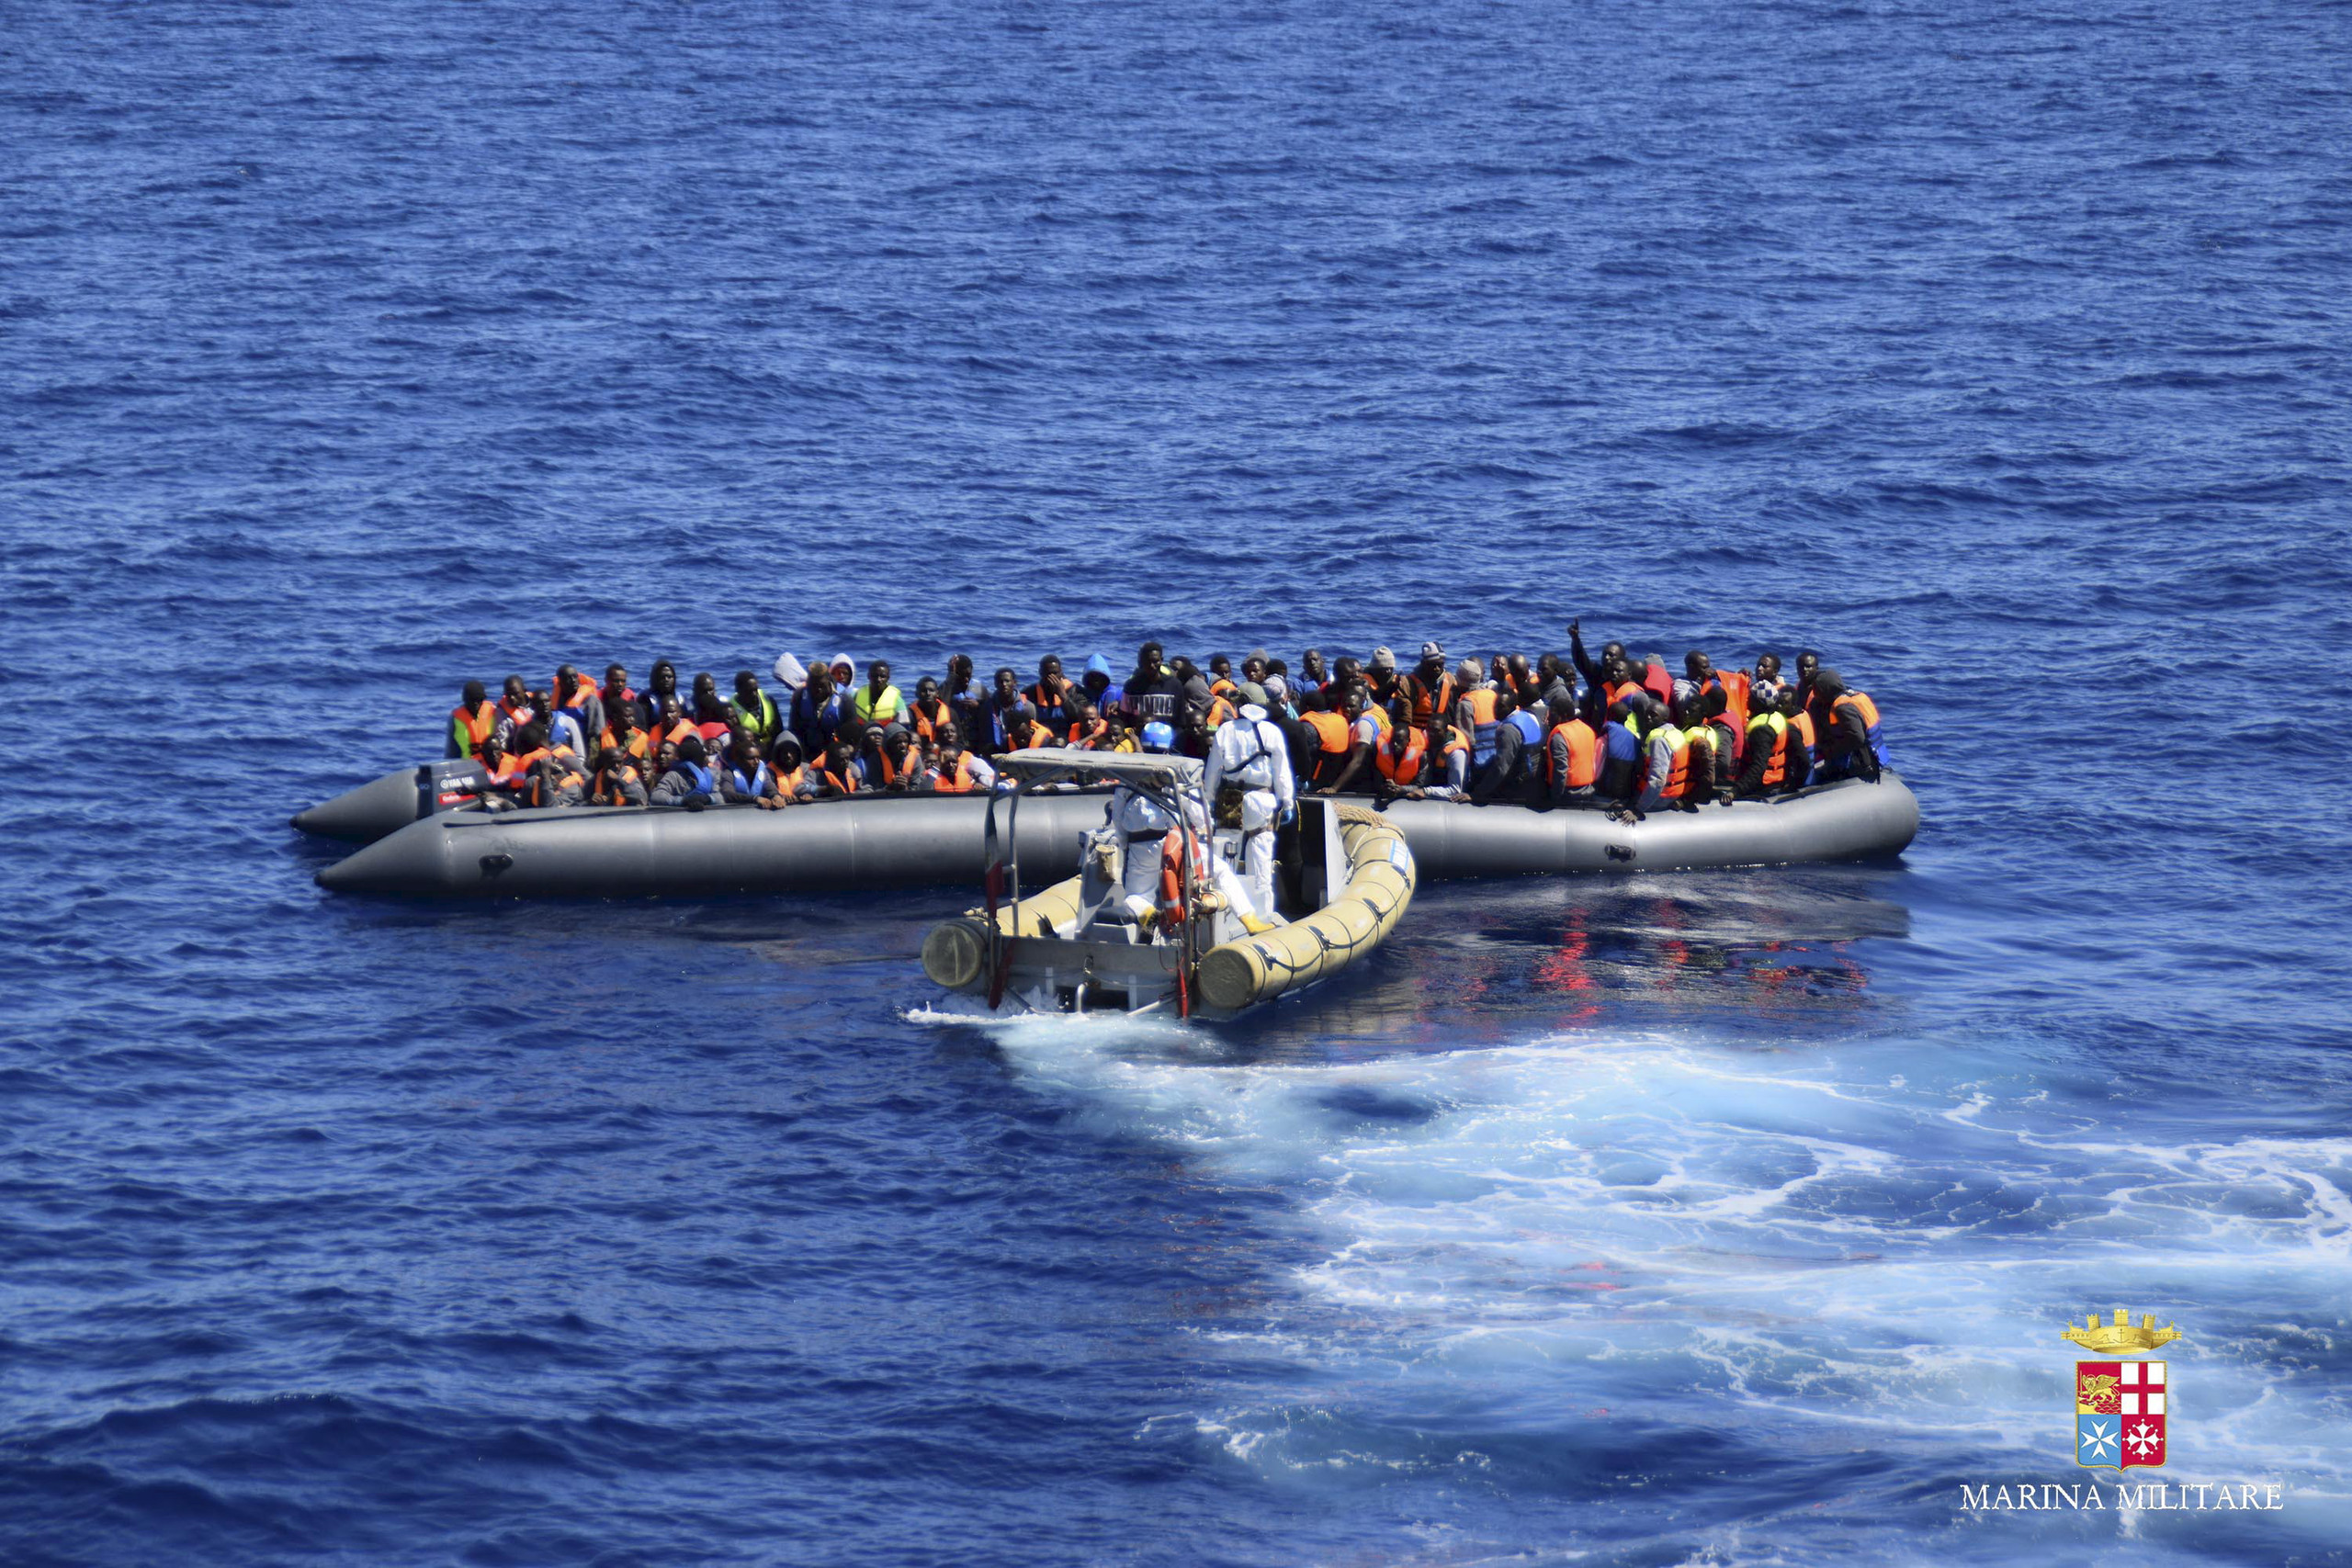 Some 3000 migrants rescued between Europe, North African coast: IOM